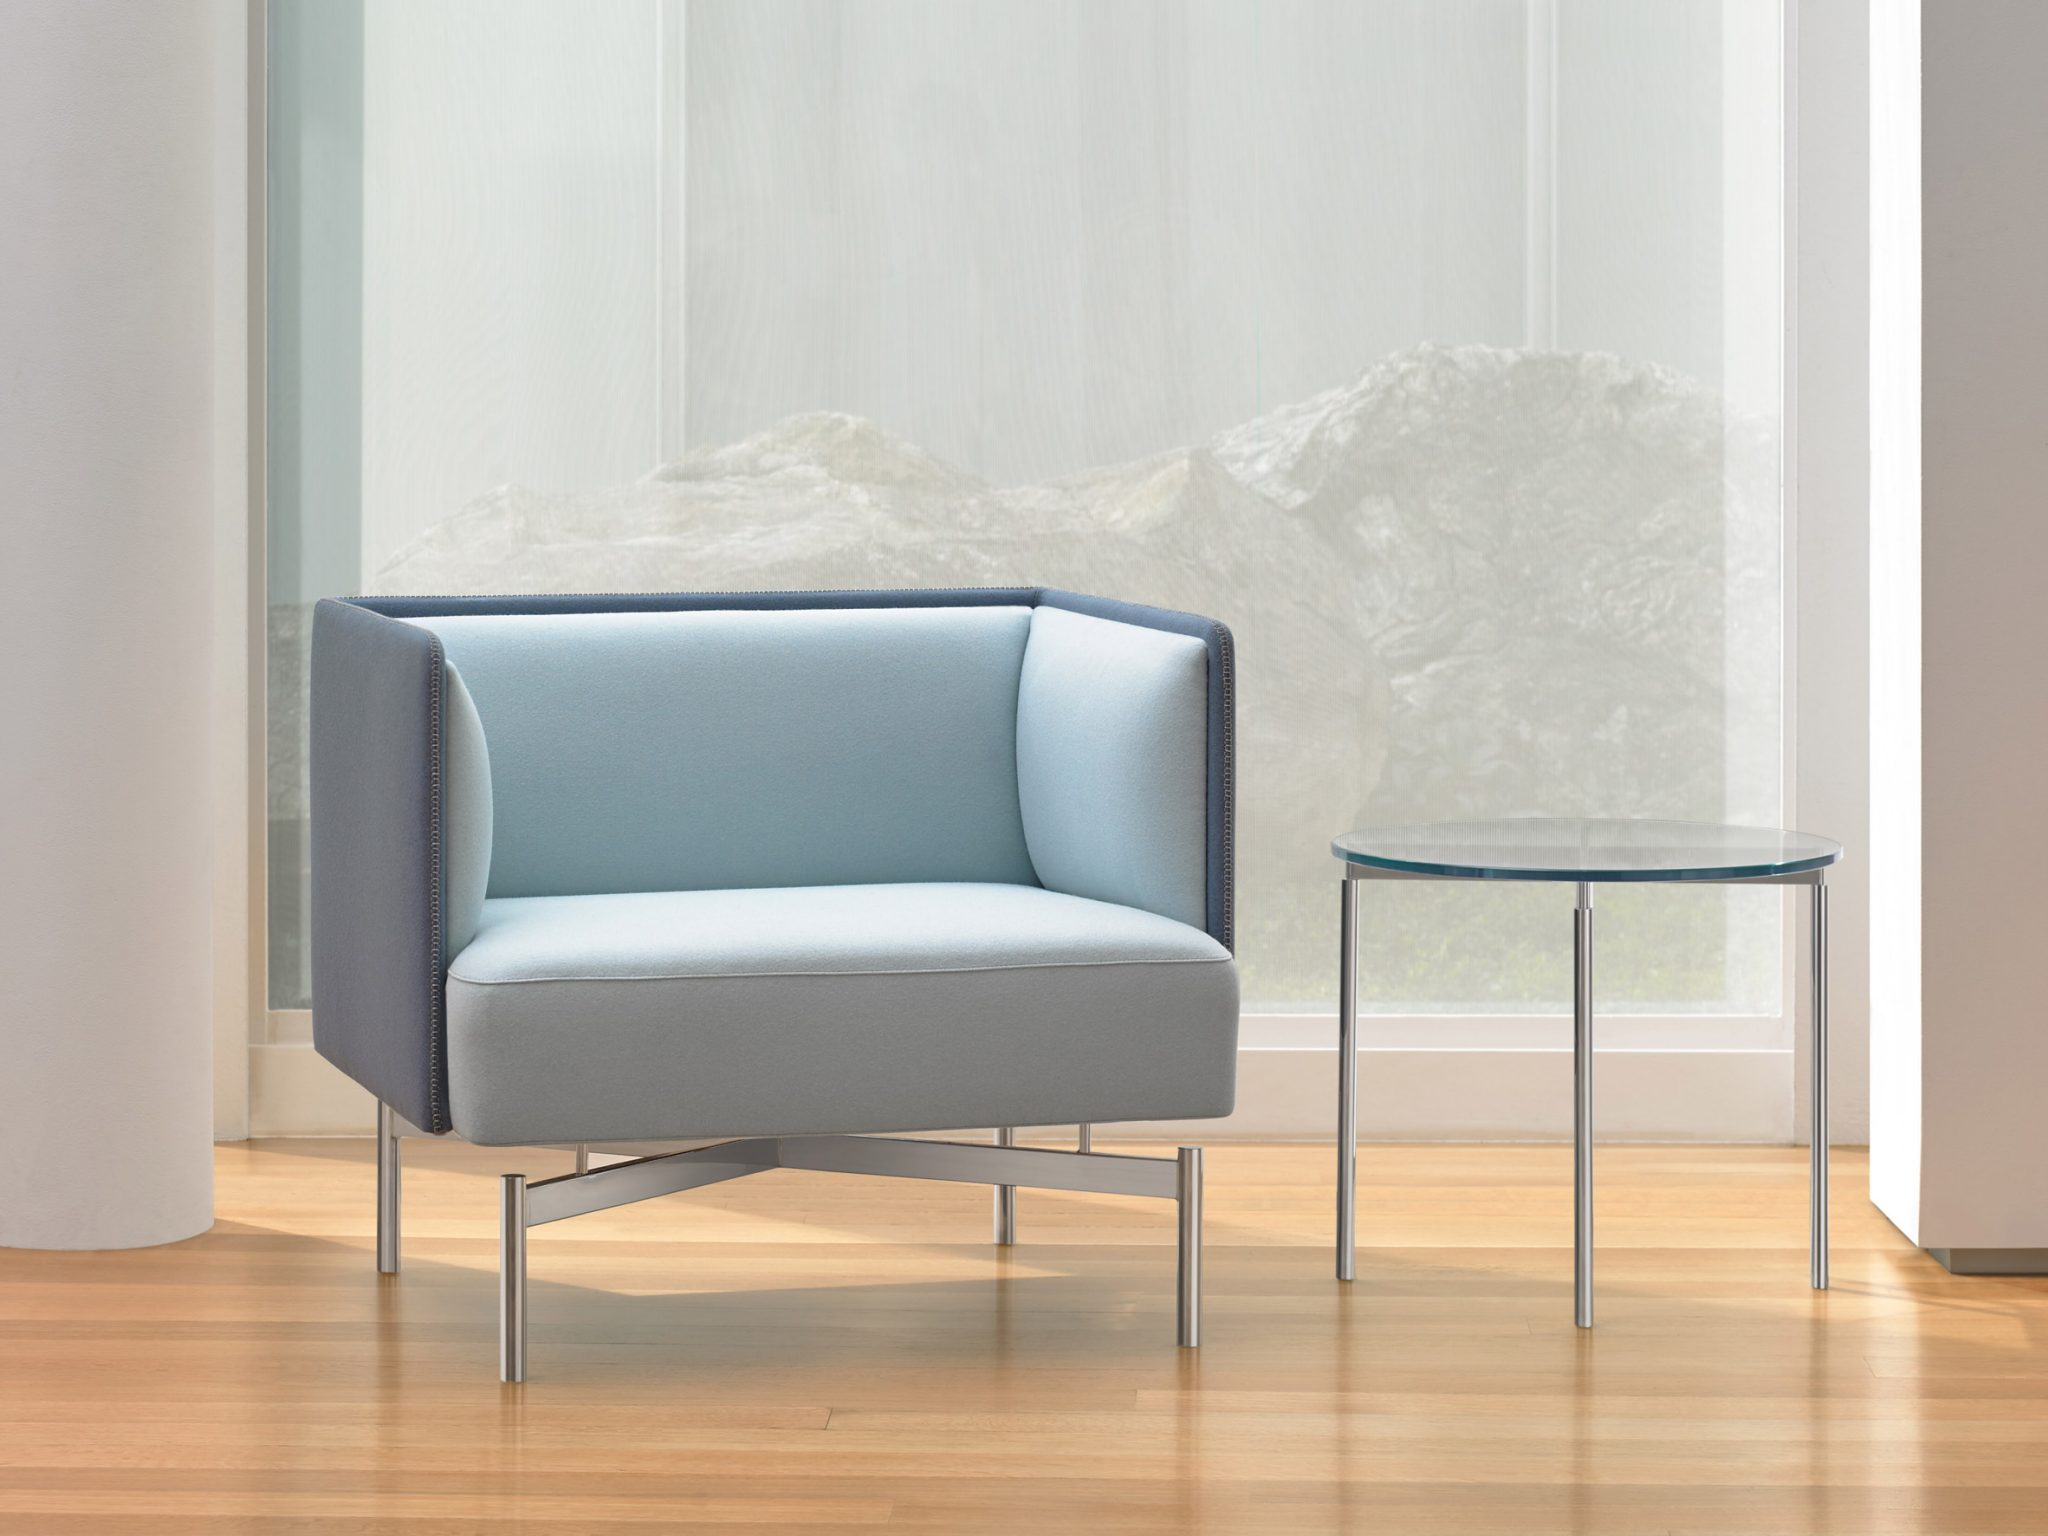 new-collection-charles-pollock-bernhardt-design-new-york-showroom-chair-furniture-design_dezeen_2364_col_1